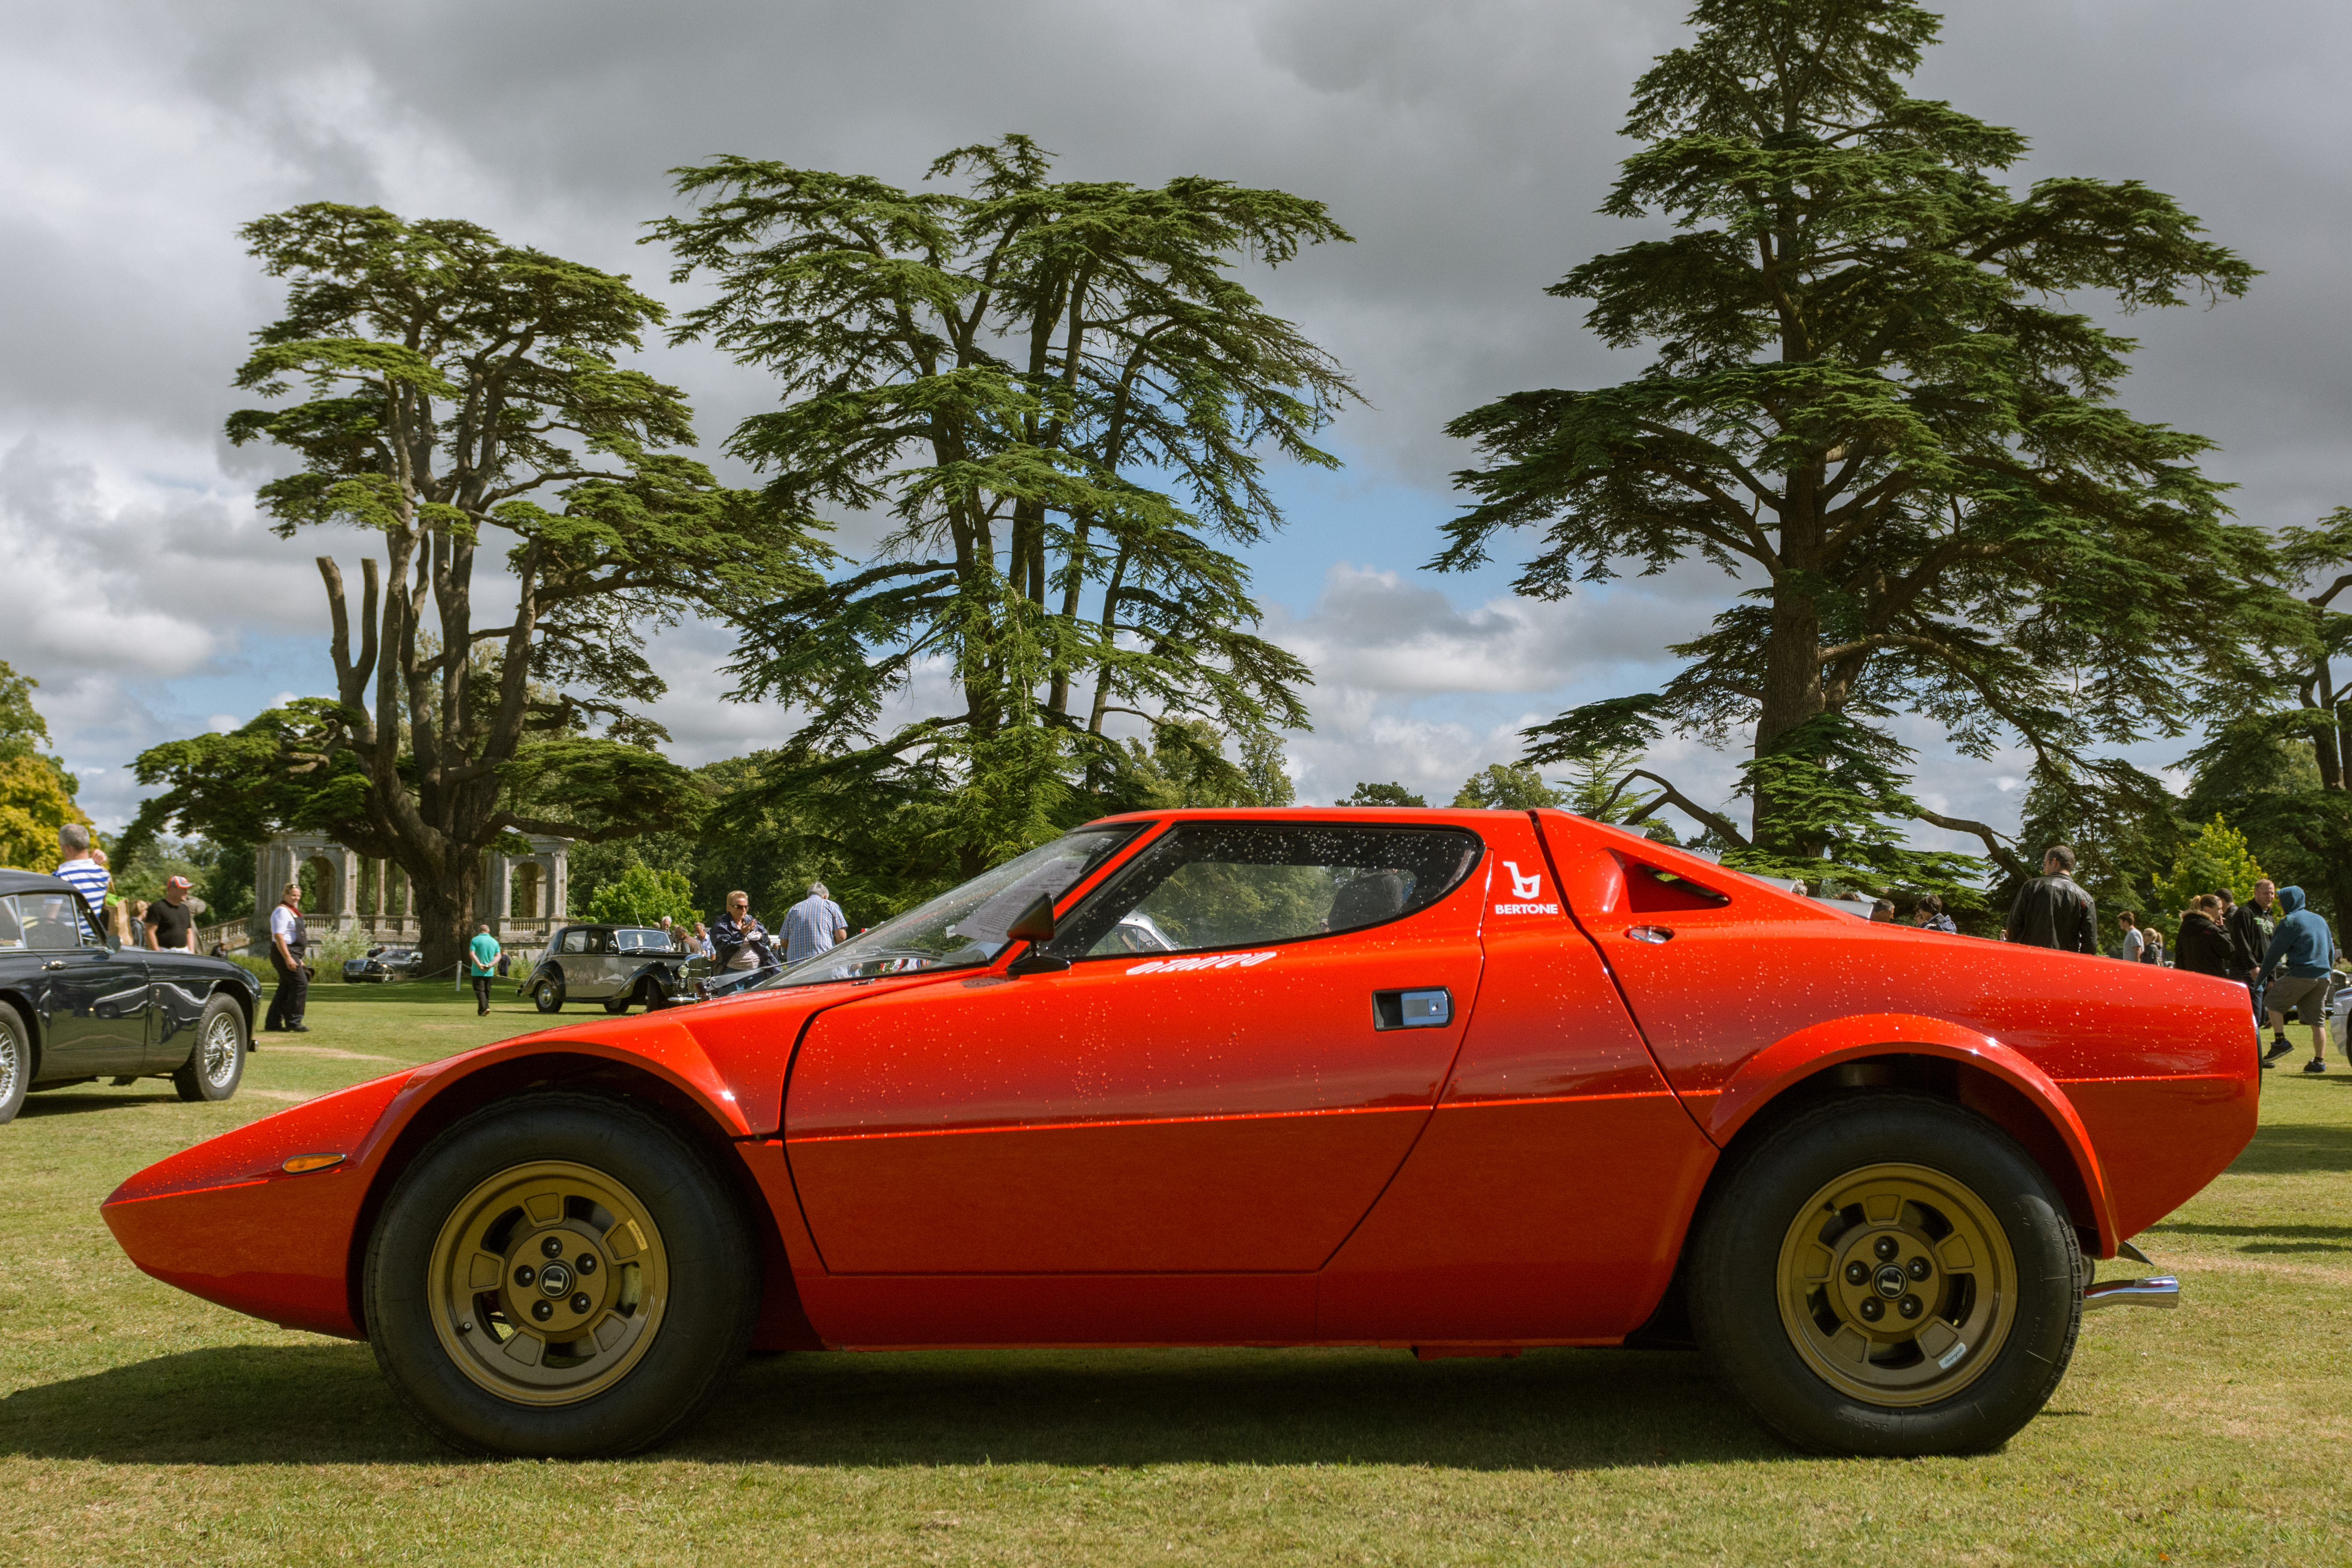 https://upload.wikimedia.org/wikipedia/commons/9/9f/Lancia_Stratos_Stradale_at_Wilton_classic_2014_1.jpg